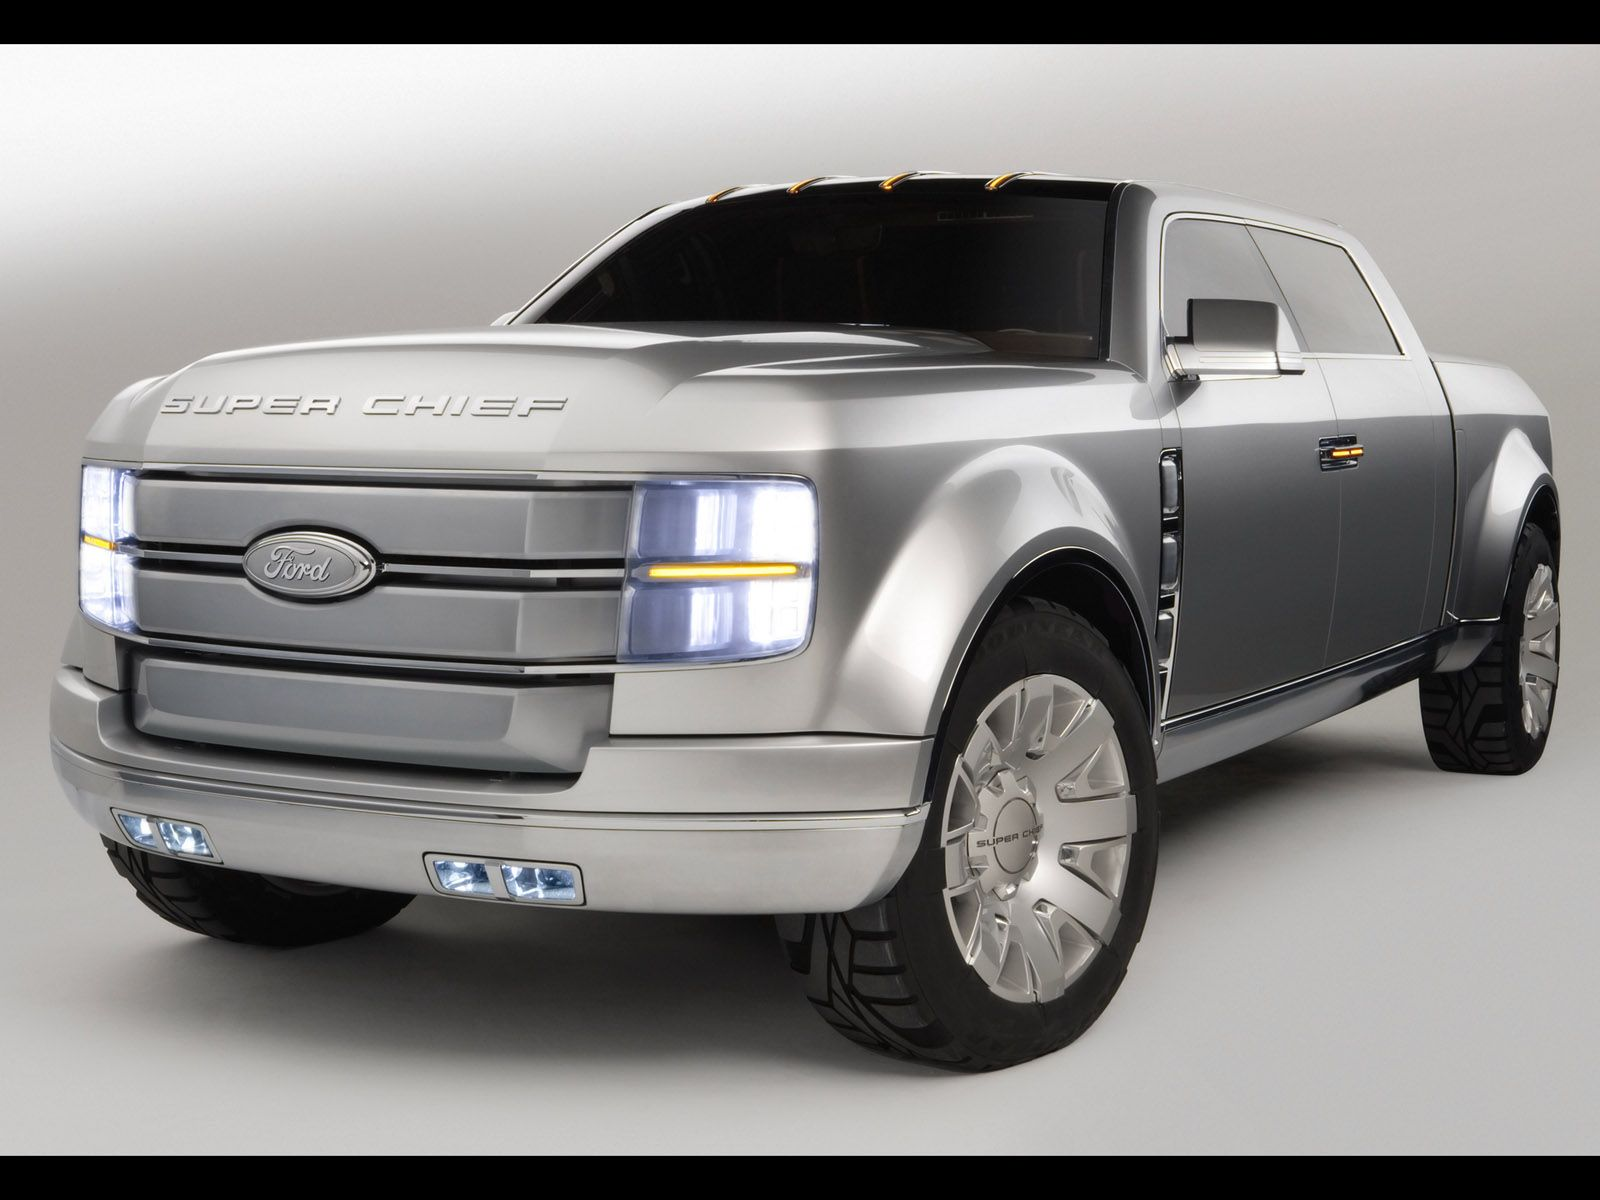 Ford f 250 super chief concept